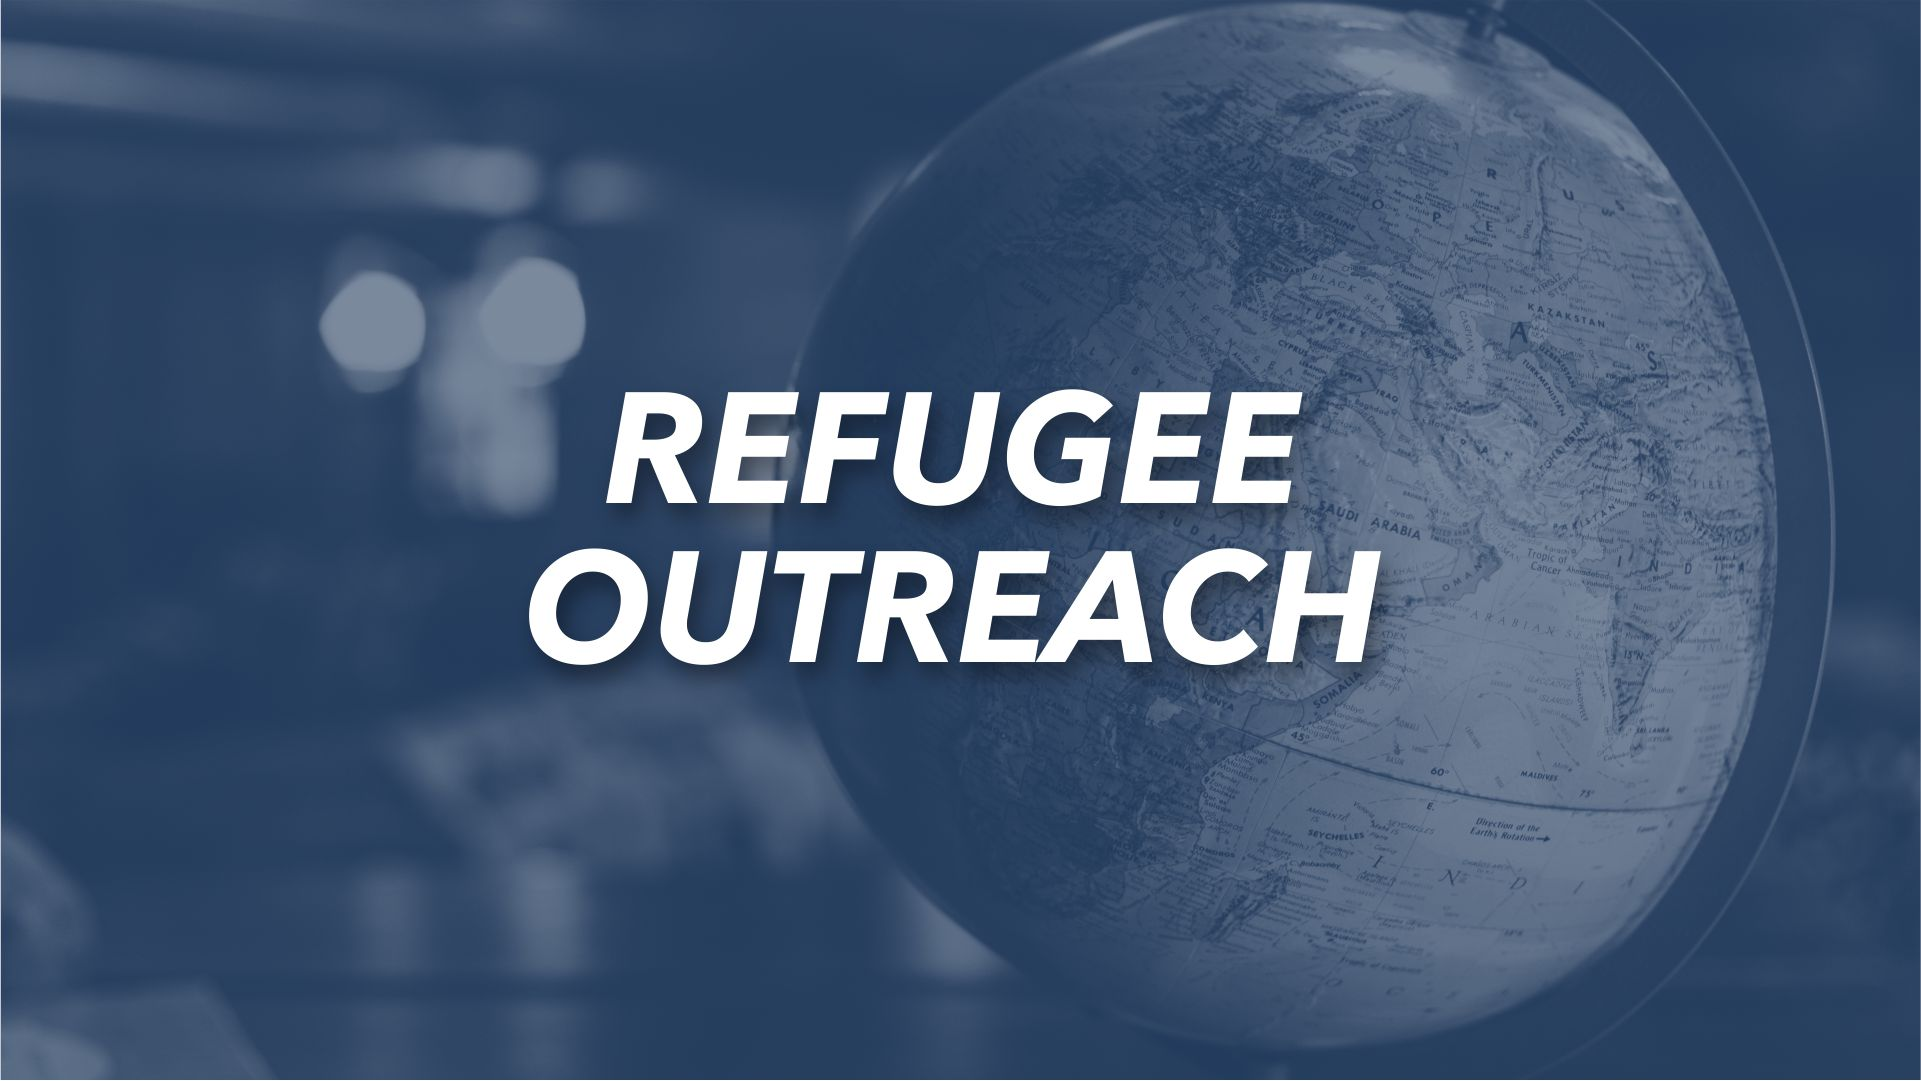 Refugees face a number of difficulties and obstacles to overcome when arriving into America. As the fourth largest receiving community for refugees in Kentucky, there is a big need to provide a loving and accepting atmosphere. We are called to love and be love to our neighbors.